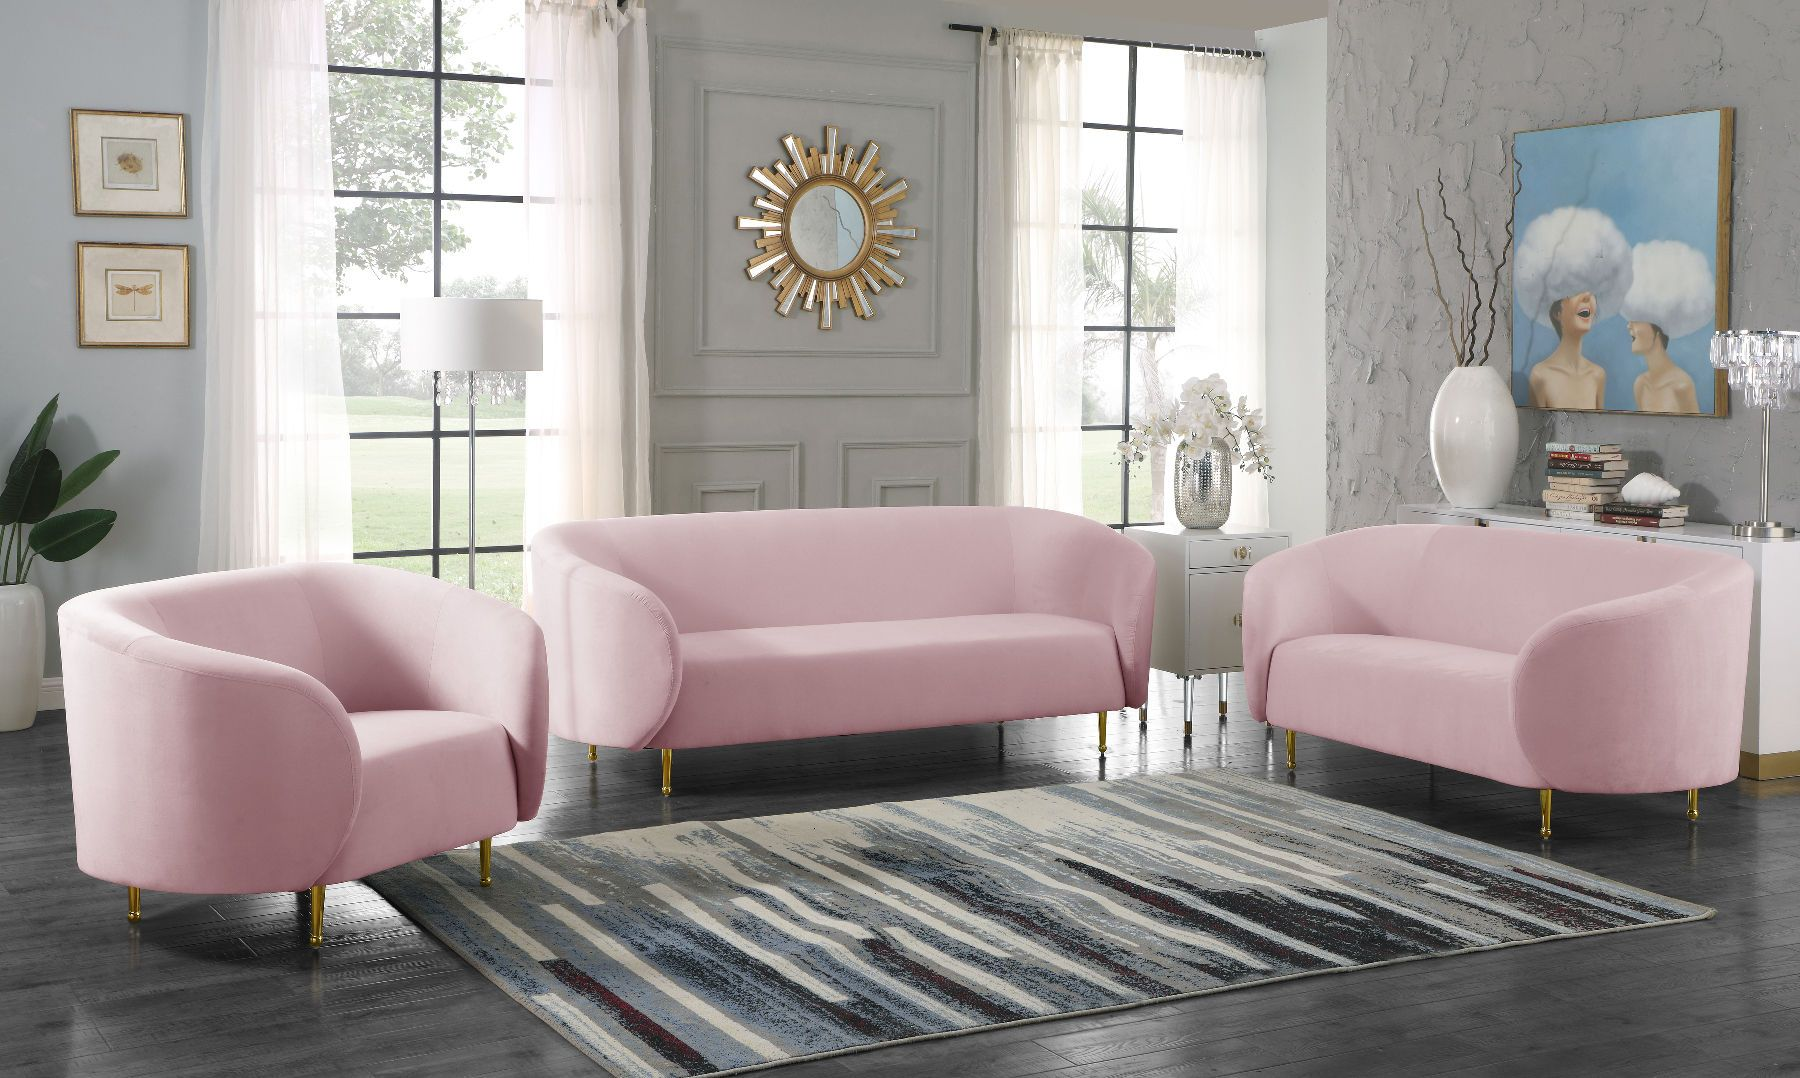 17+ Pink living room set ideas in 2021